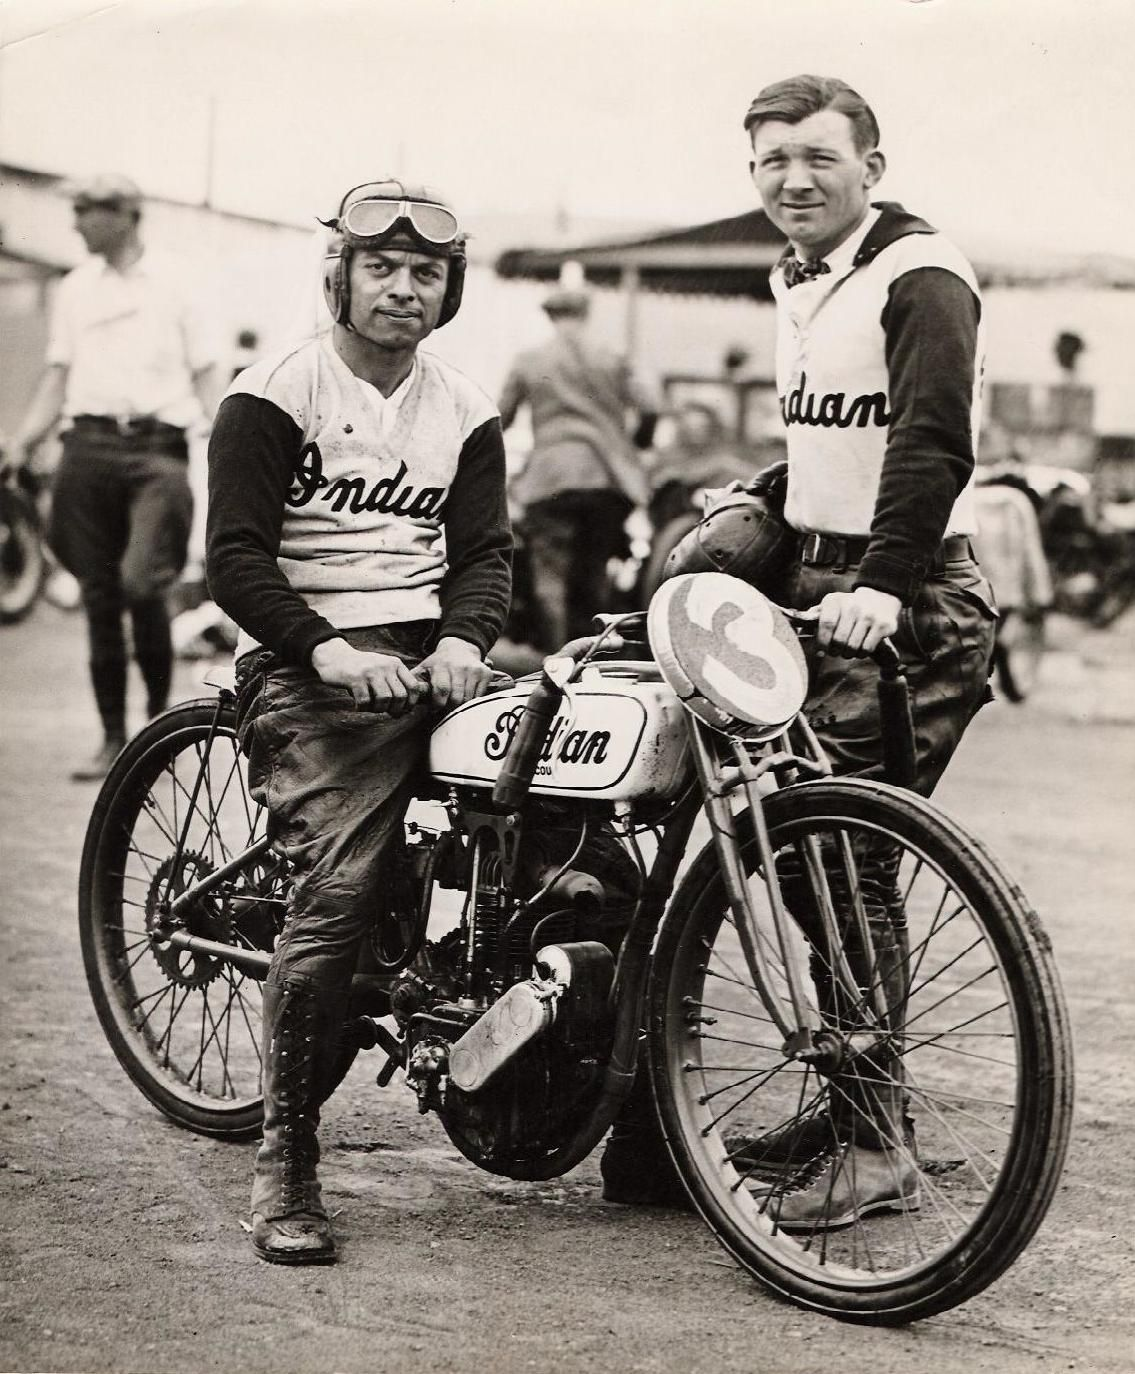 Indian Race Team With Images Indian Motorcycle Vintage Indian